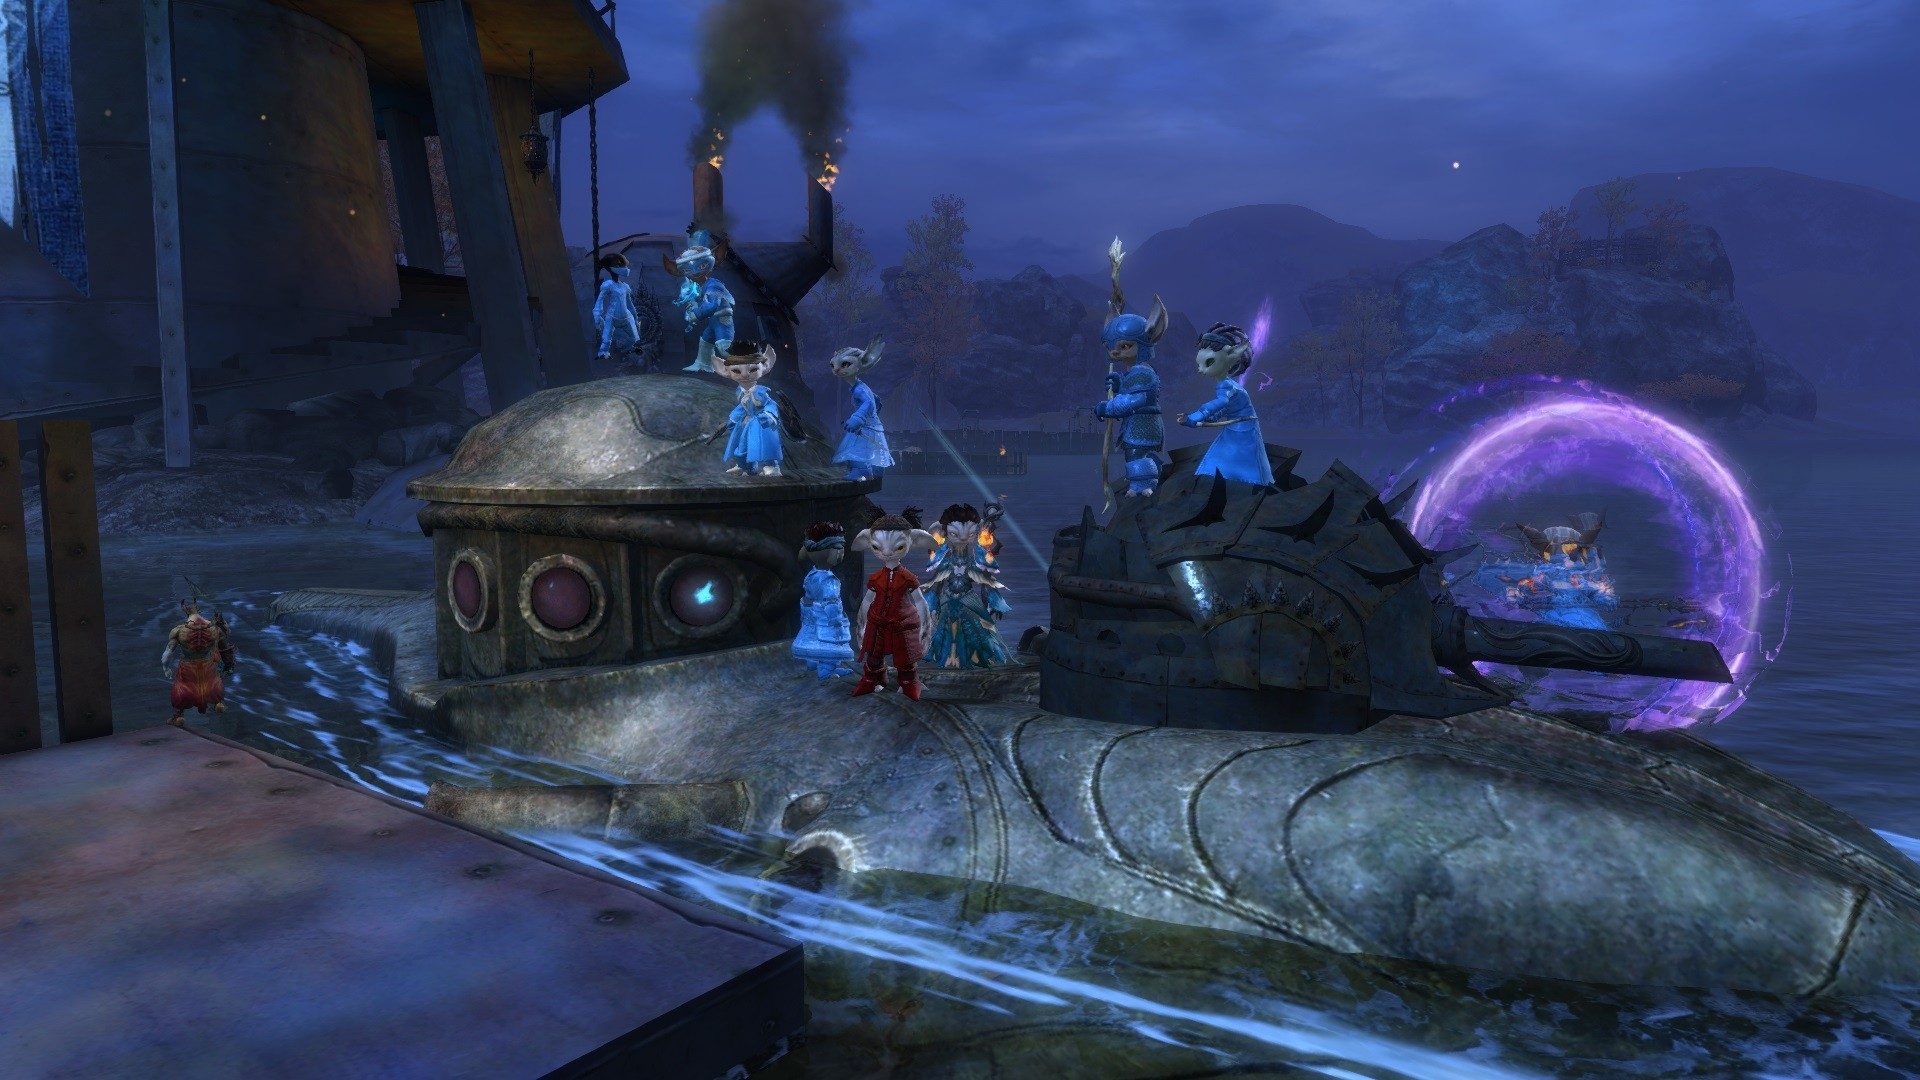 GW2-Asuran guildies taking over an Asuran submarine!